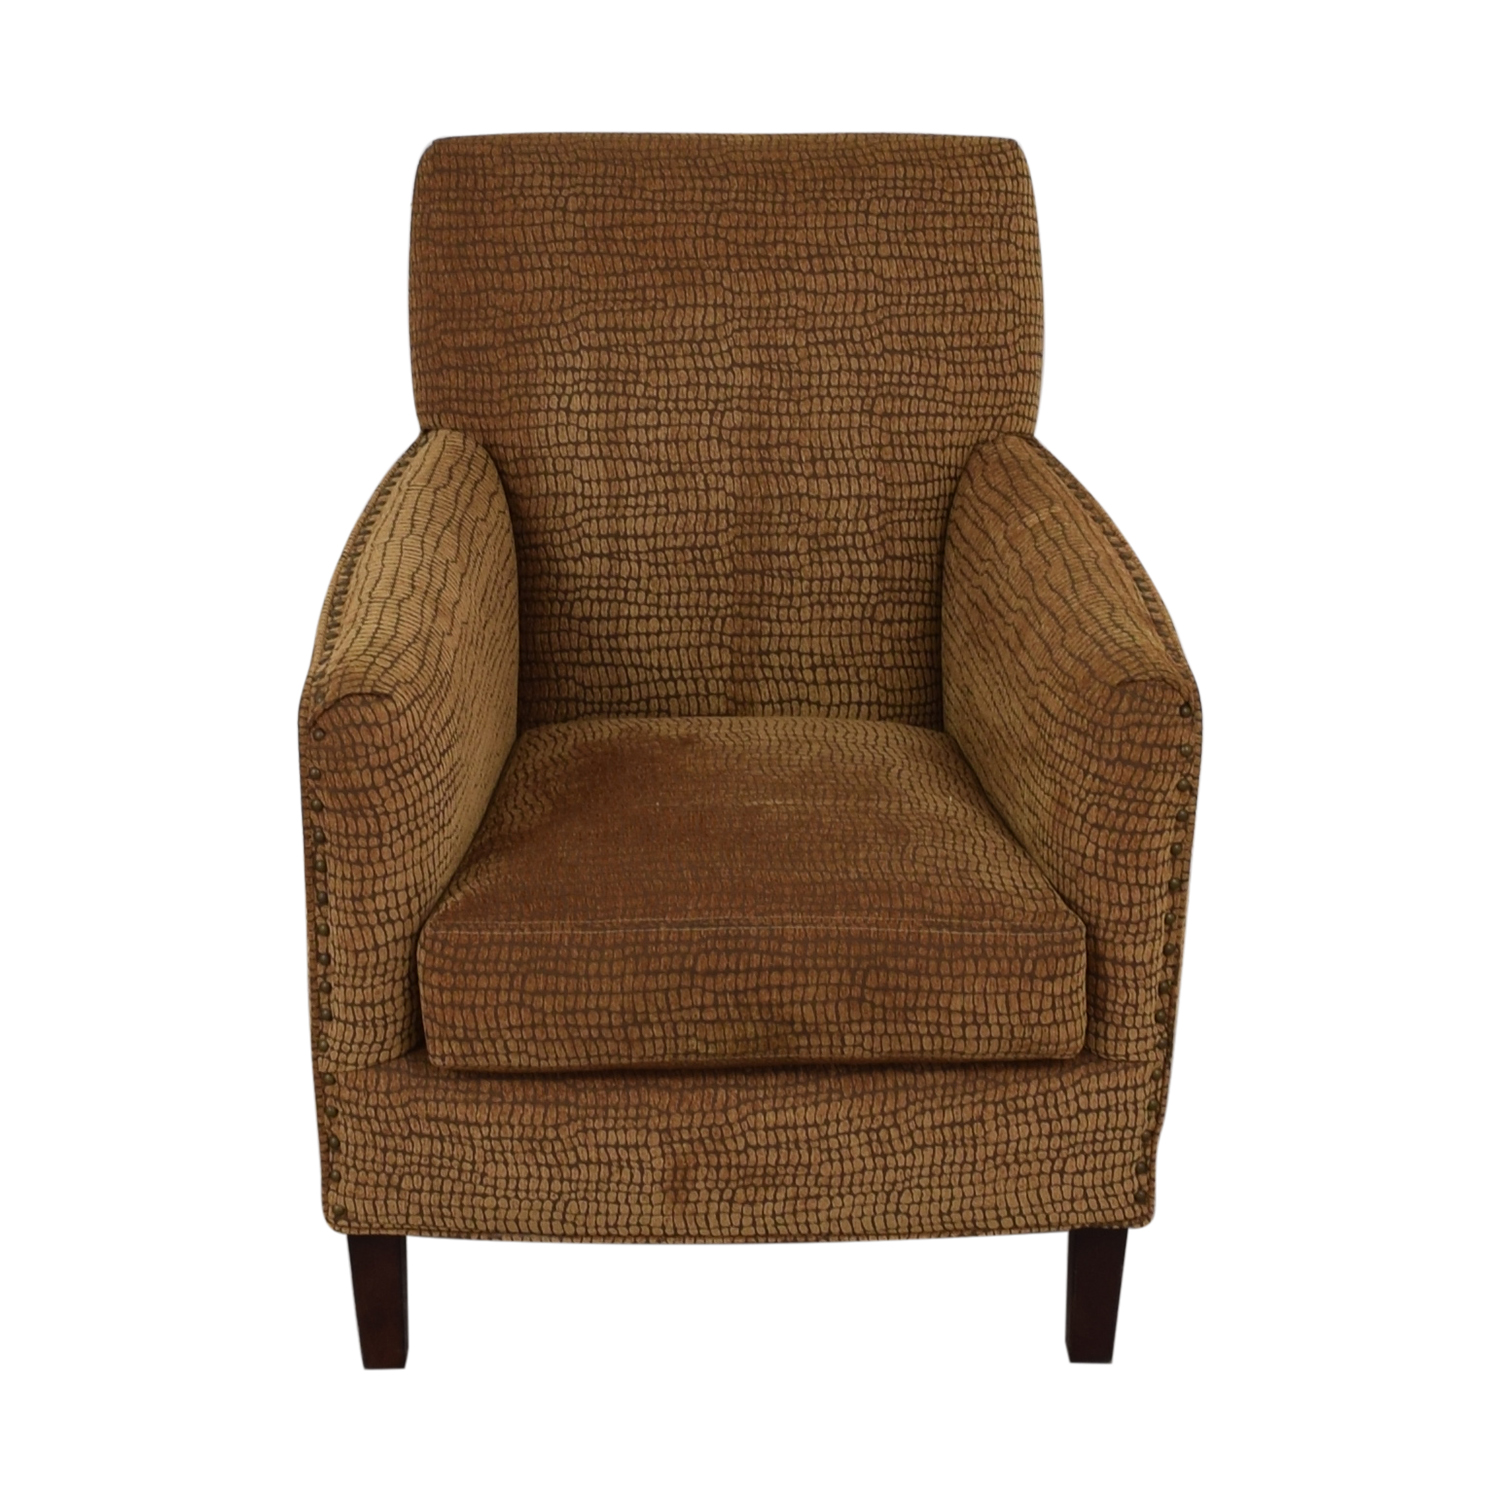 Sam Moore Chairs 84 Off Sam Moore Sam Moore Multi Colored Accent Chair Chairs